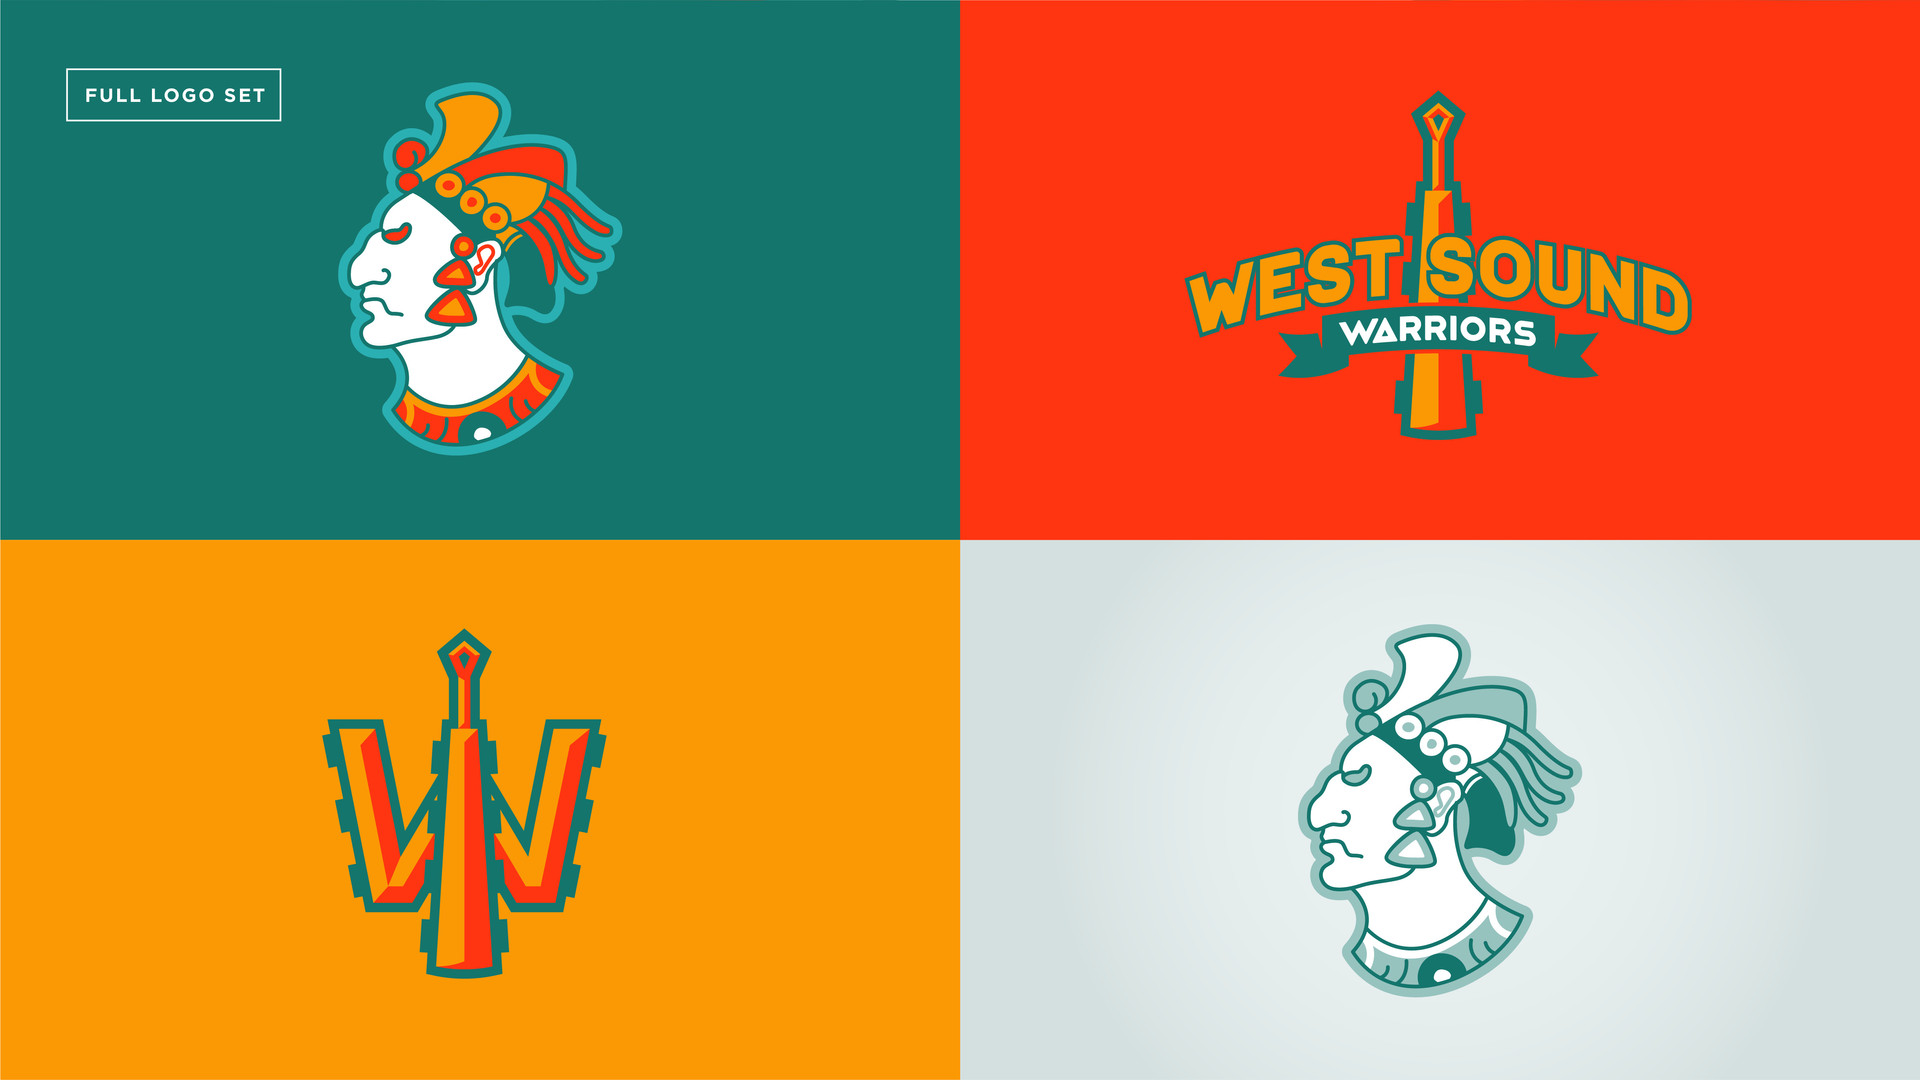 West Sound Warriors Behance Template-04.